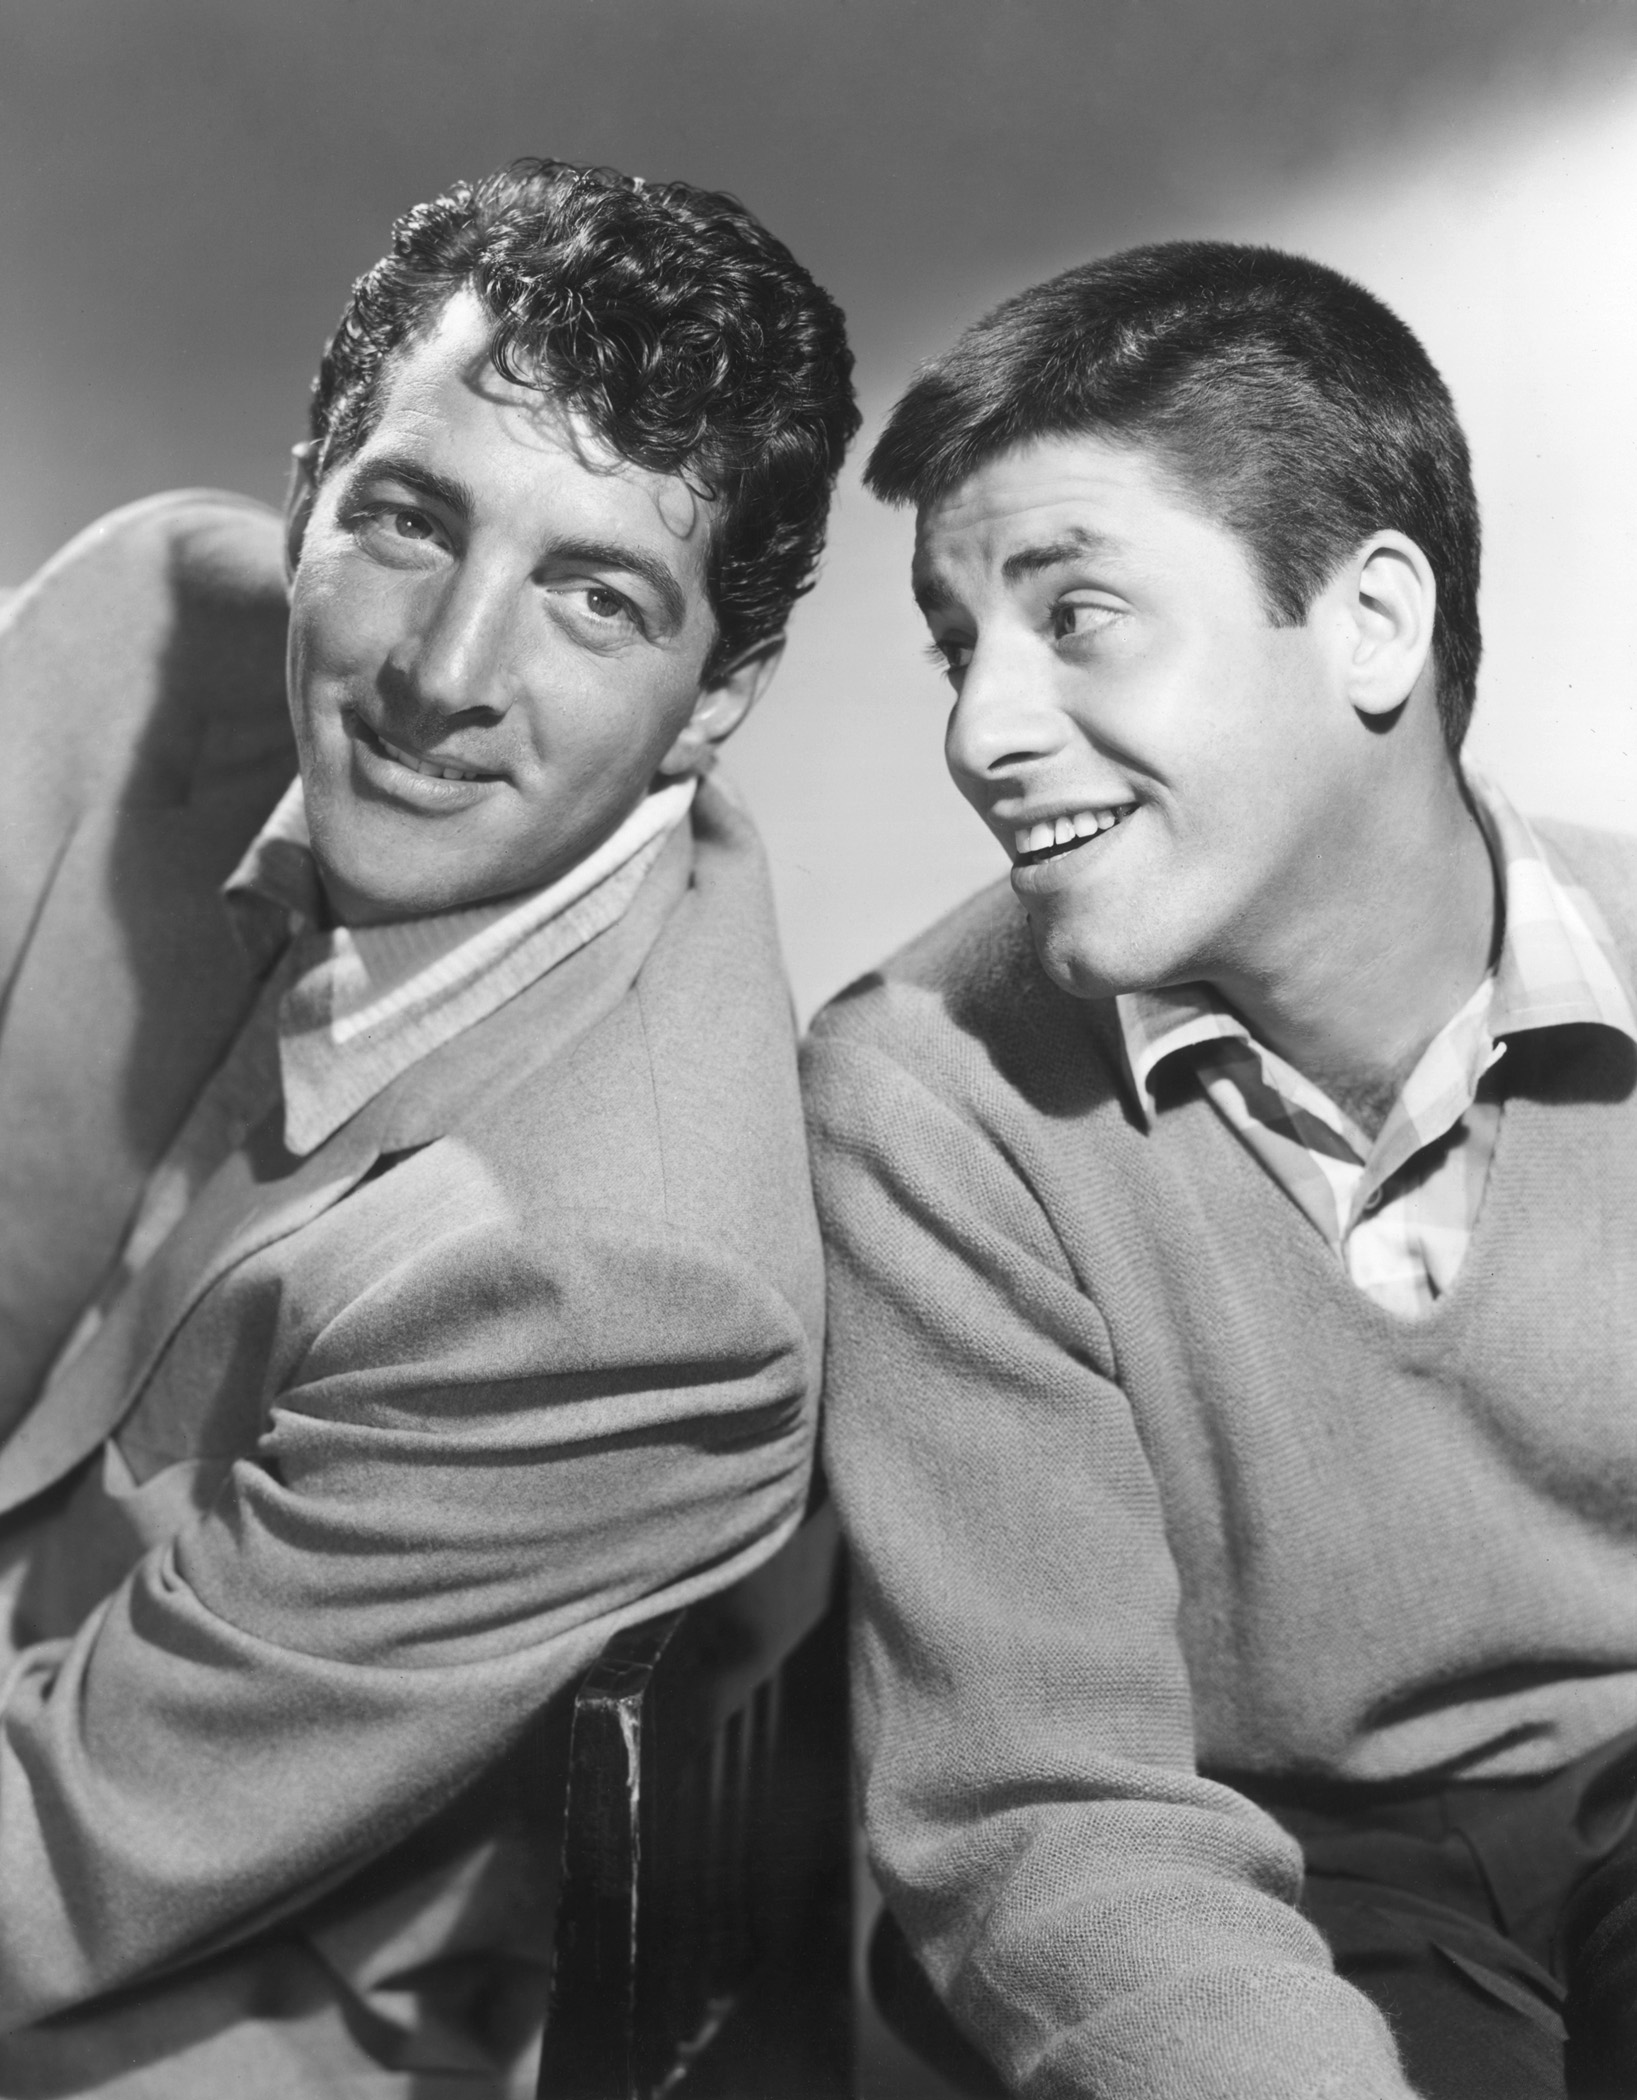 1953: American comic team Dean Martin and Jerry Lewis smiling promotional portrait for The Colgate Comedy Hour